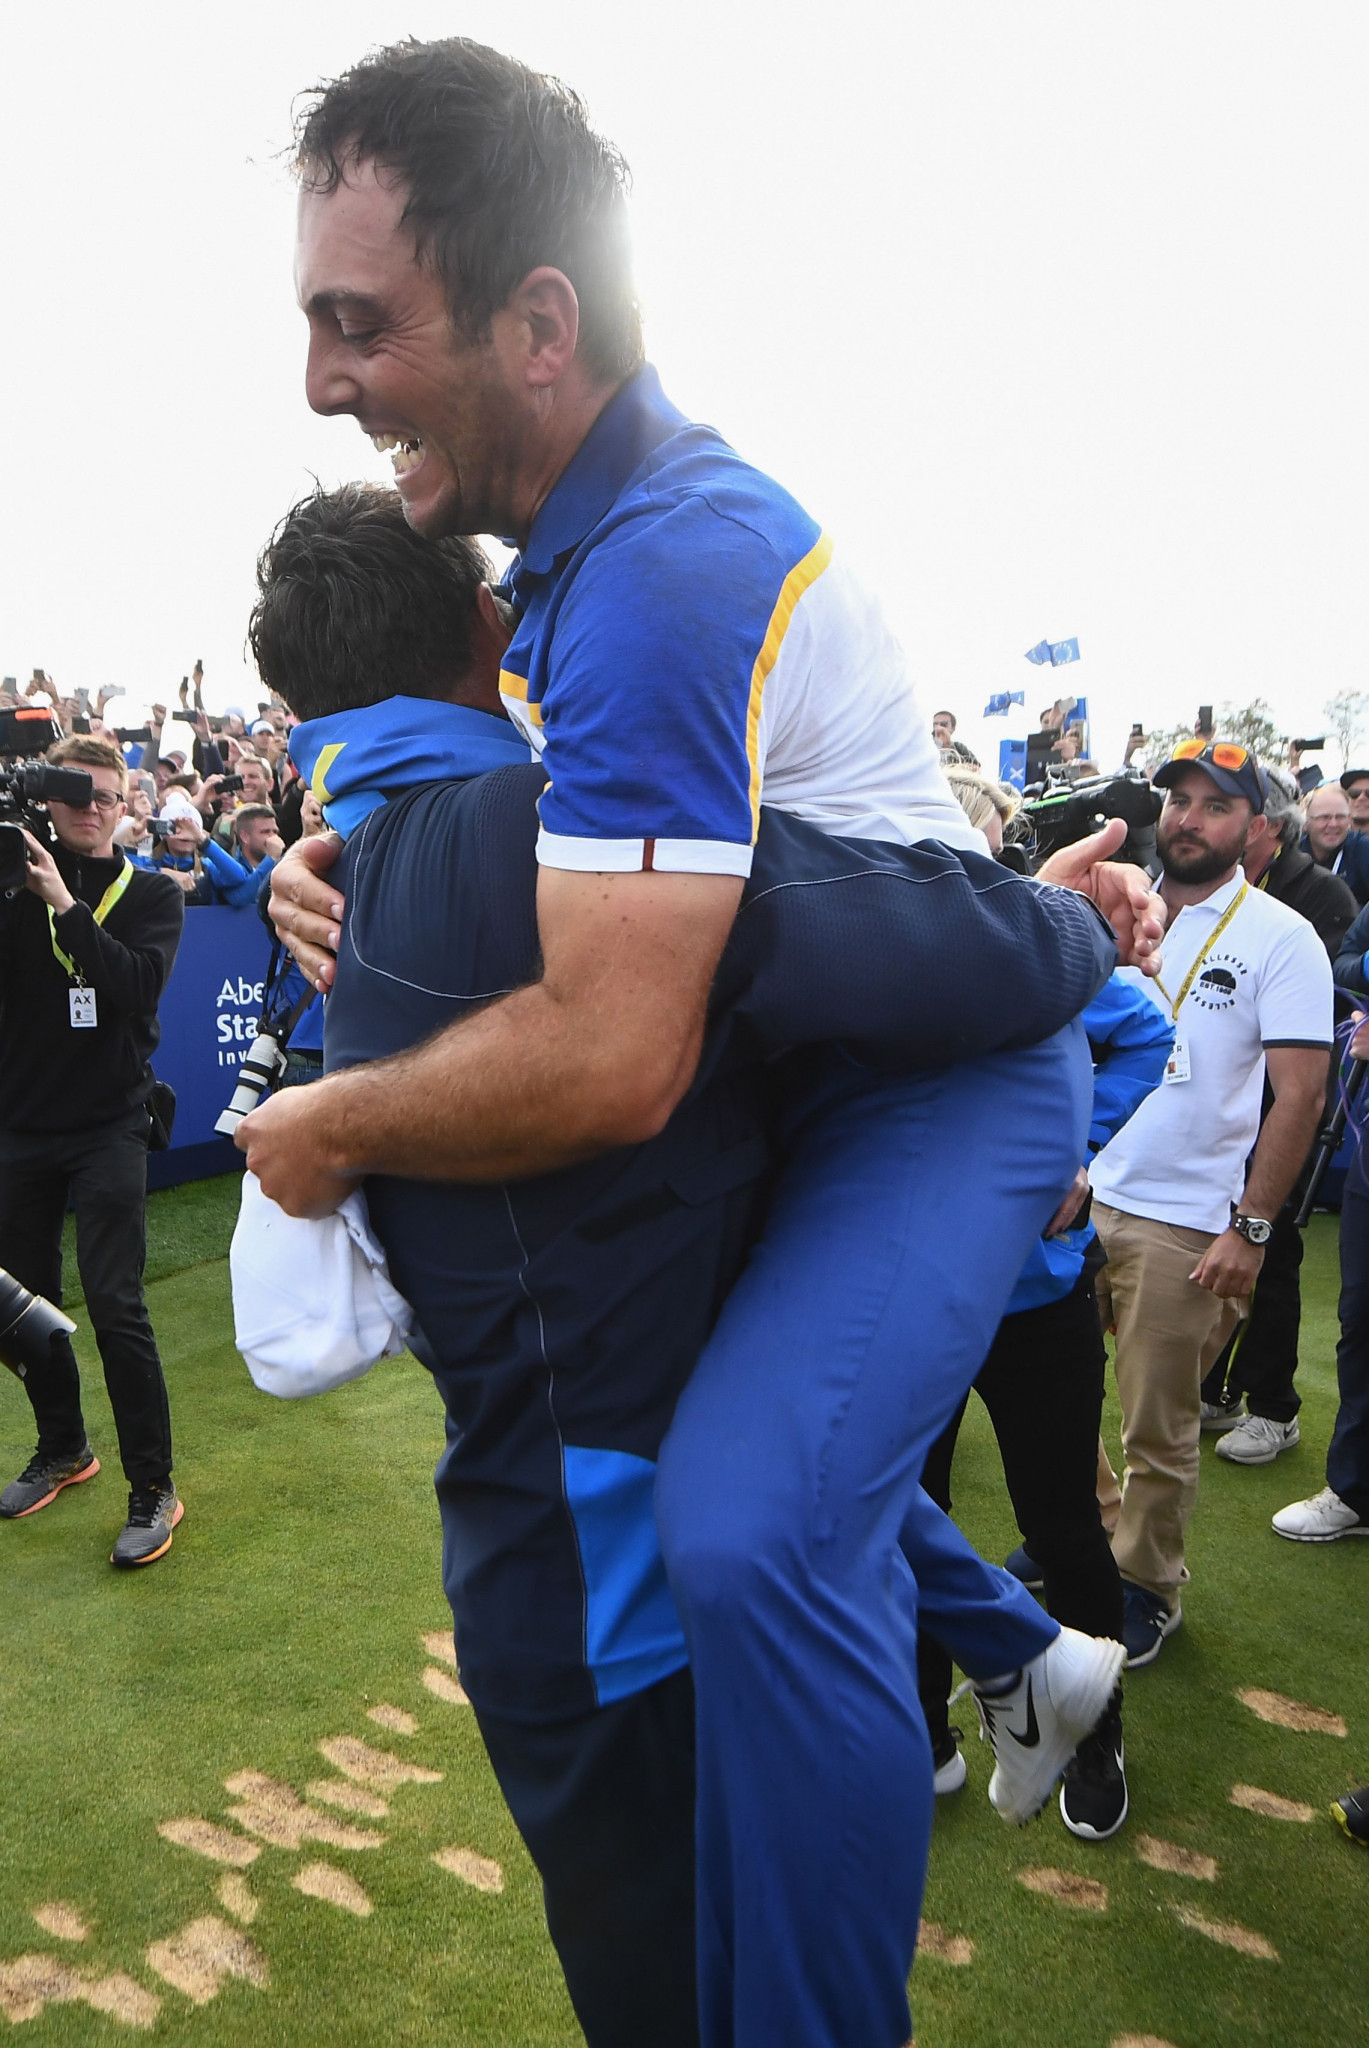 Italy's Francesco Molinari celebrates after scoring the decisive singles victory which meant Europe regained the Ryder Cup from the United States in Paris ©Getty Images